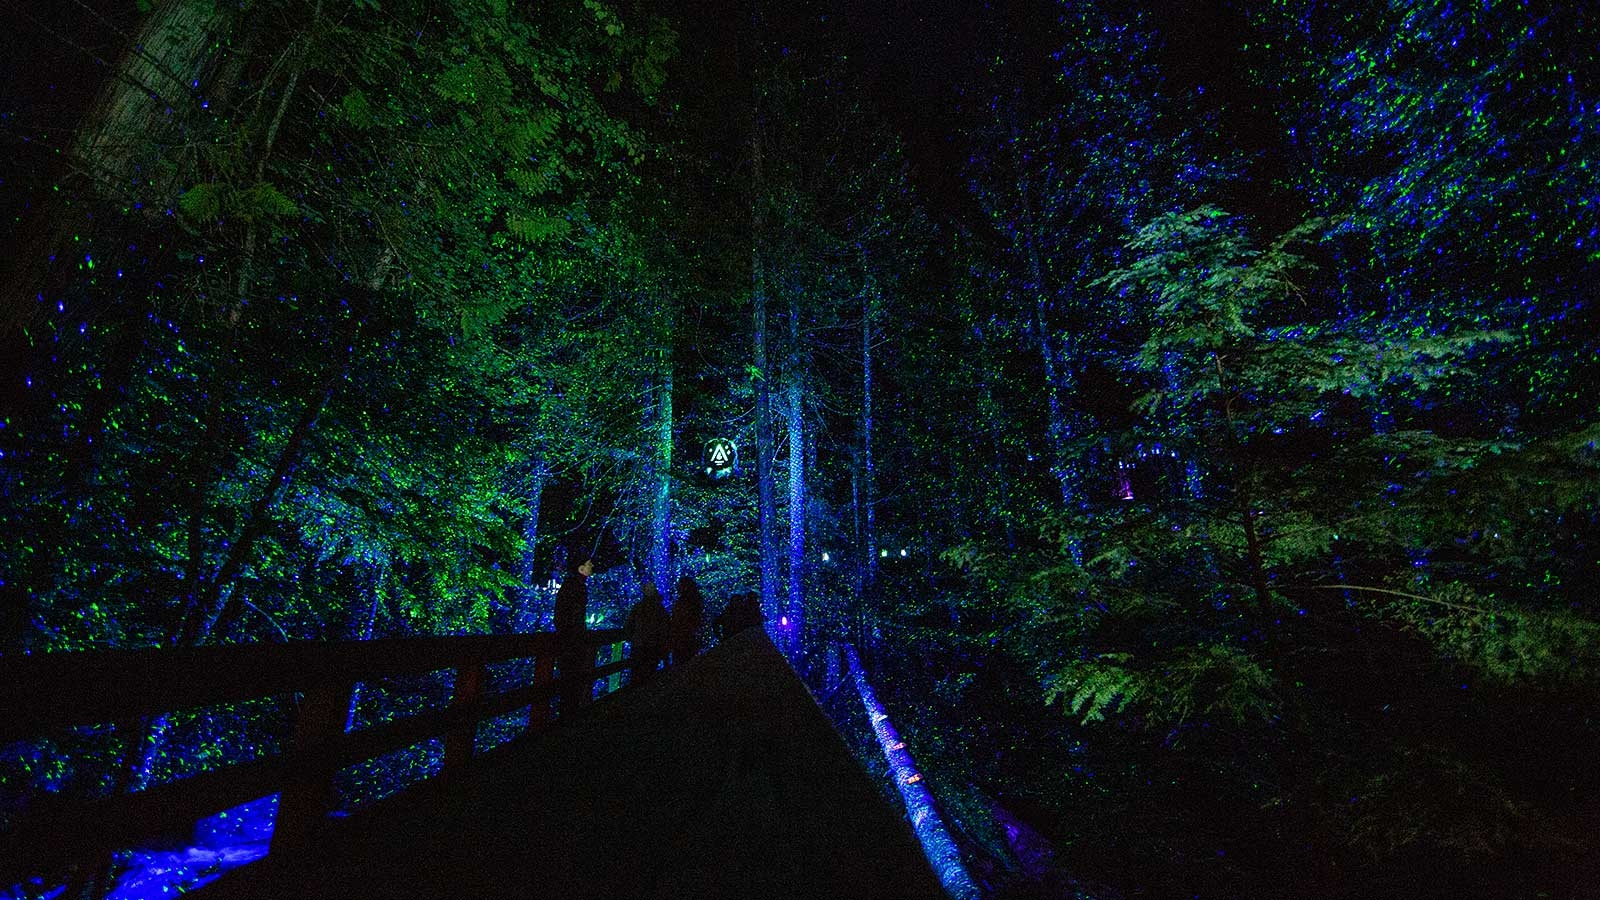 Dark forrest with blue and green illuminations in Whistler